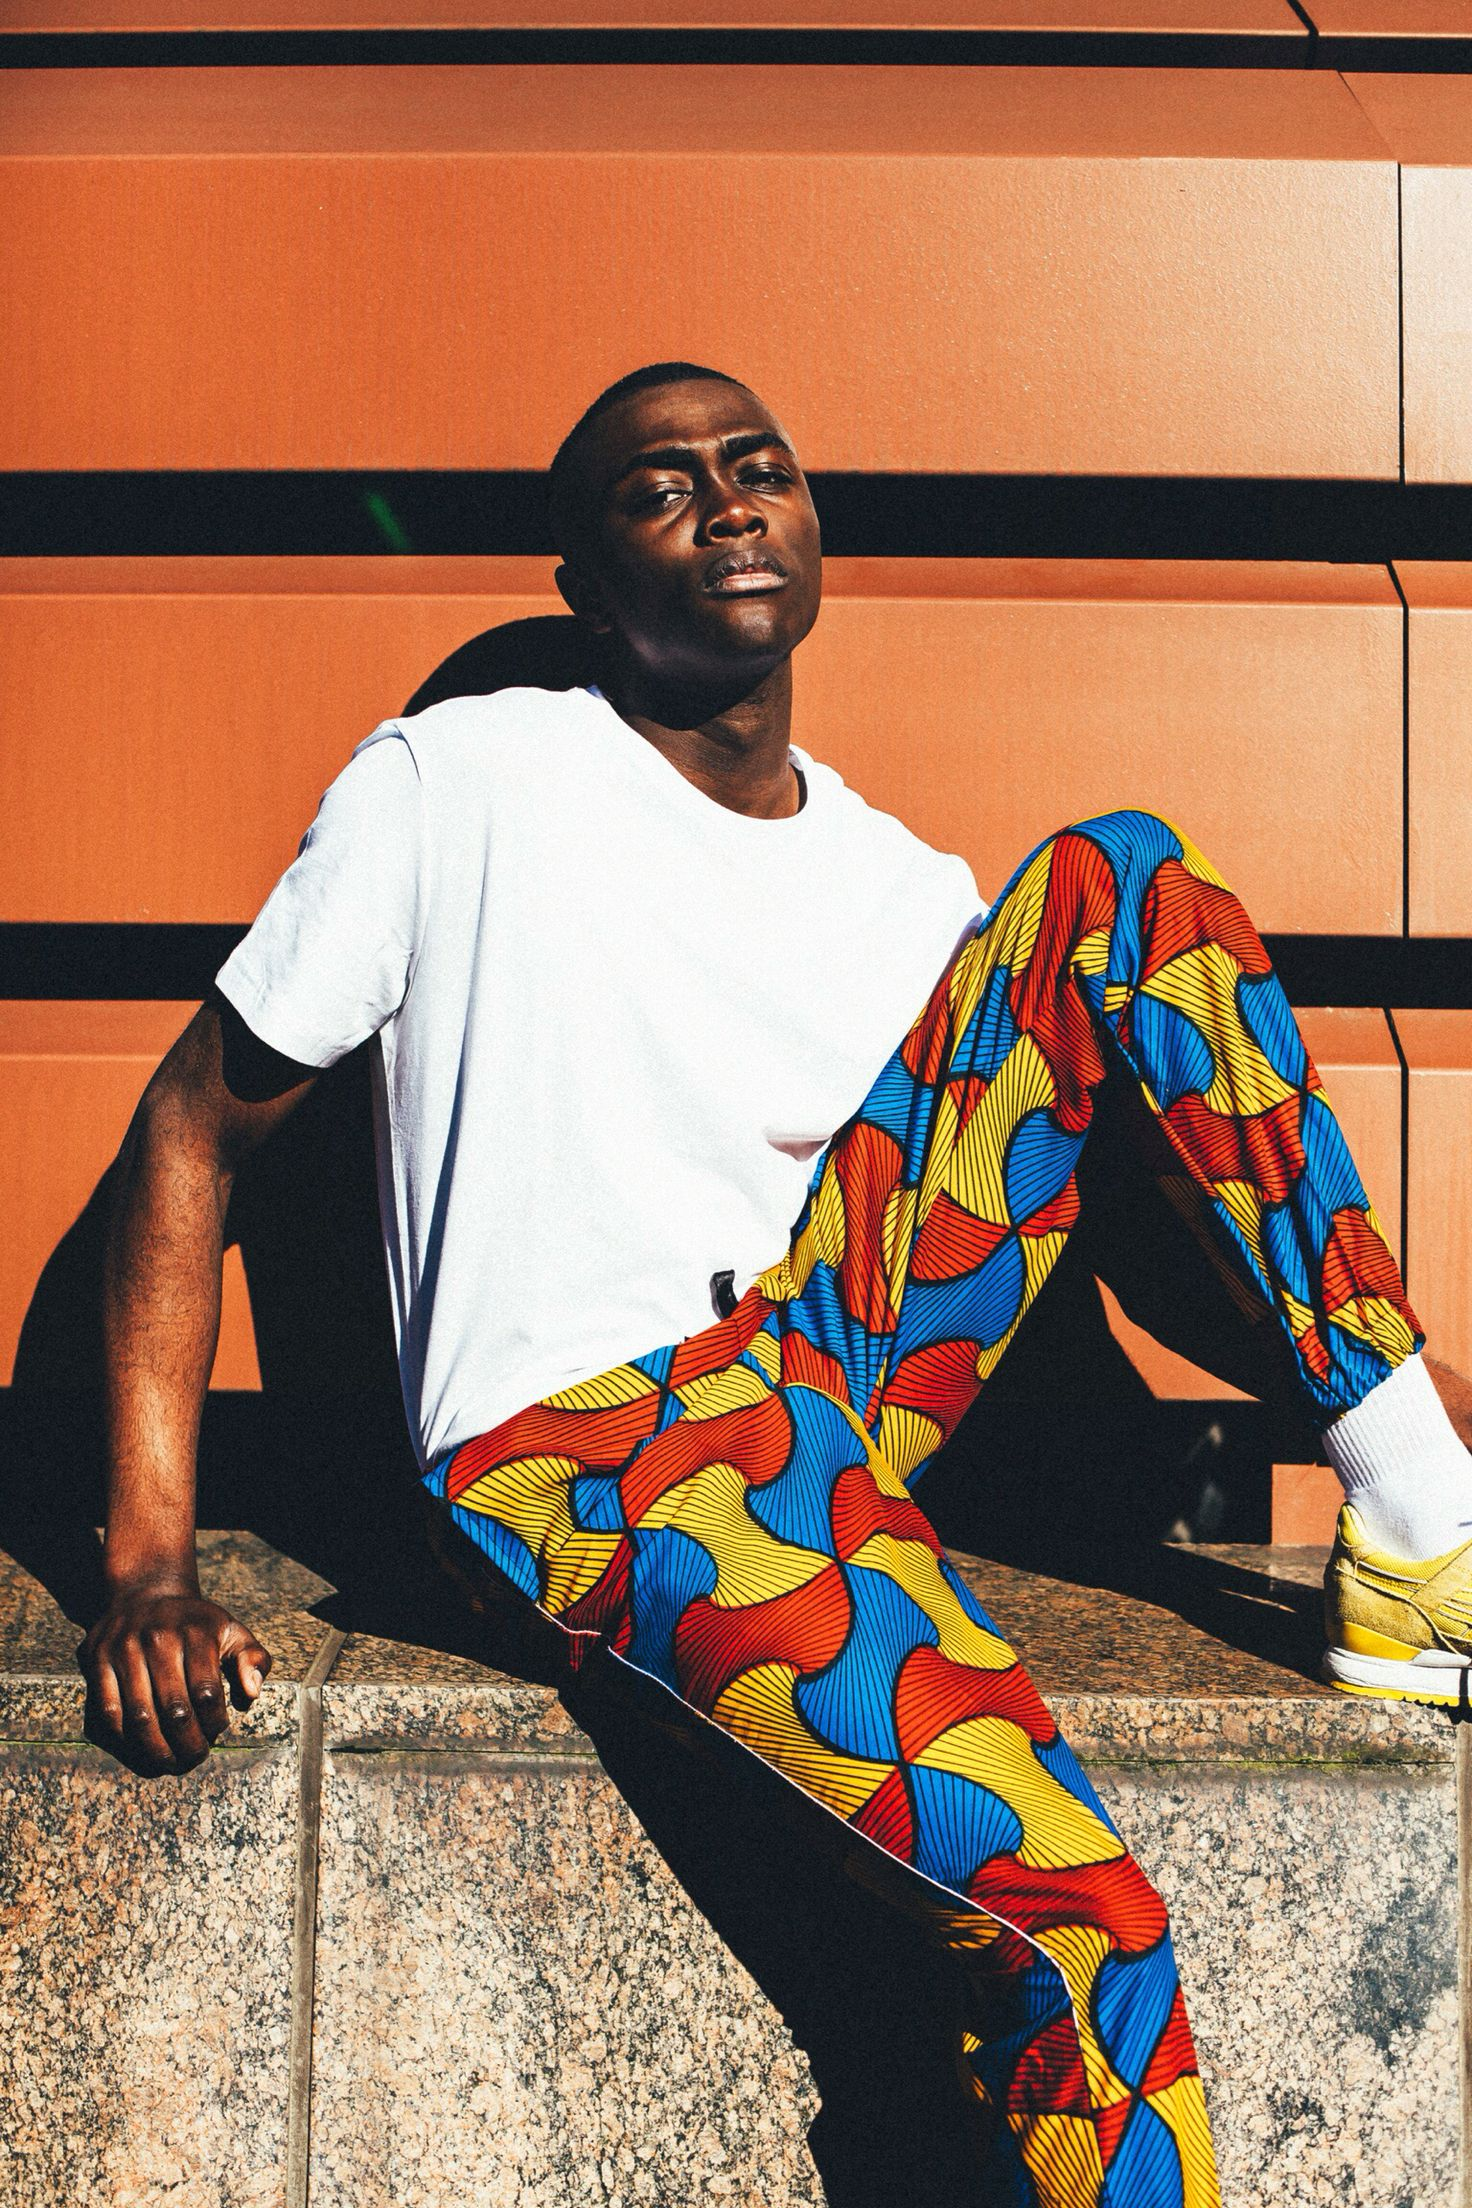 Bundu Bison African Inspired Streetwear Routed In Edinburgh